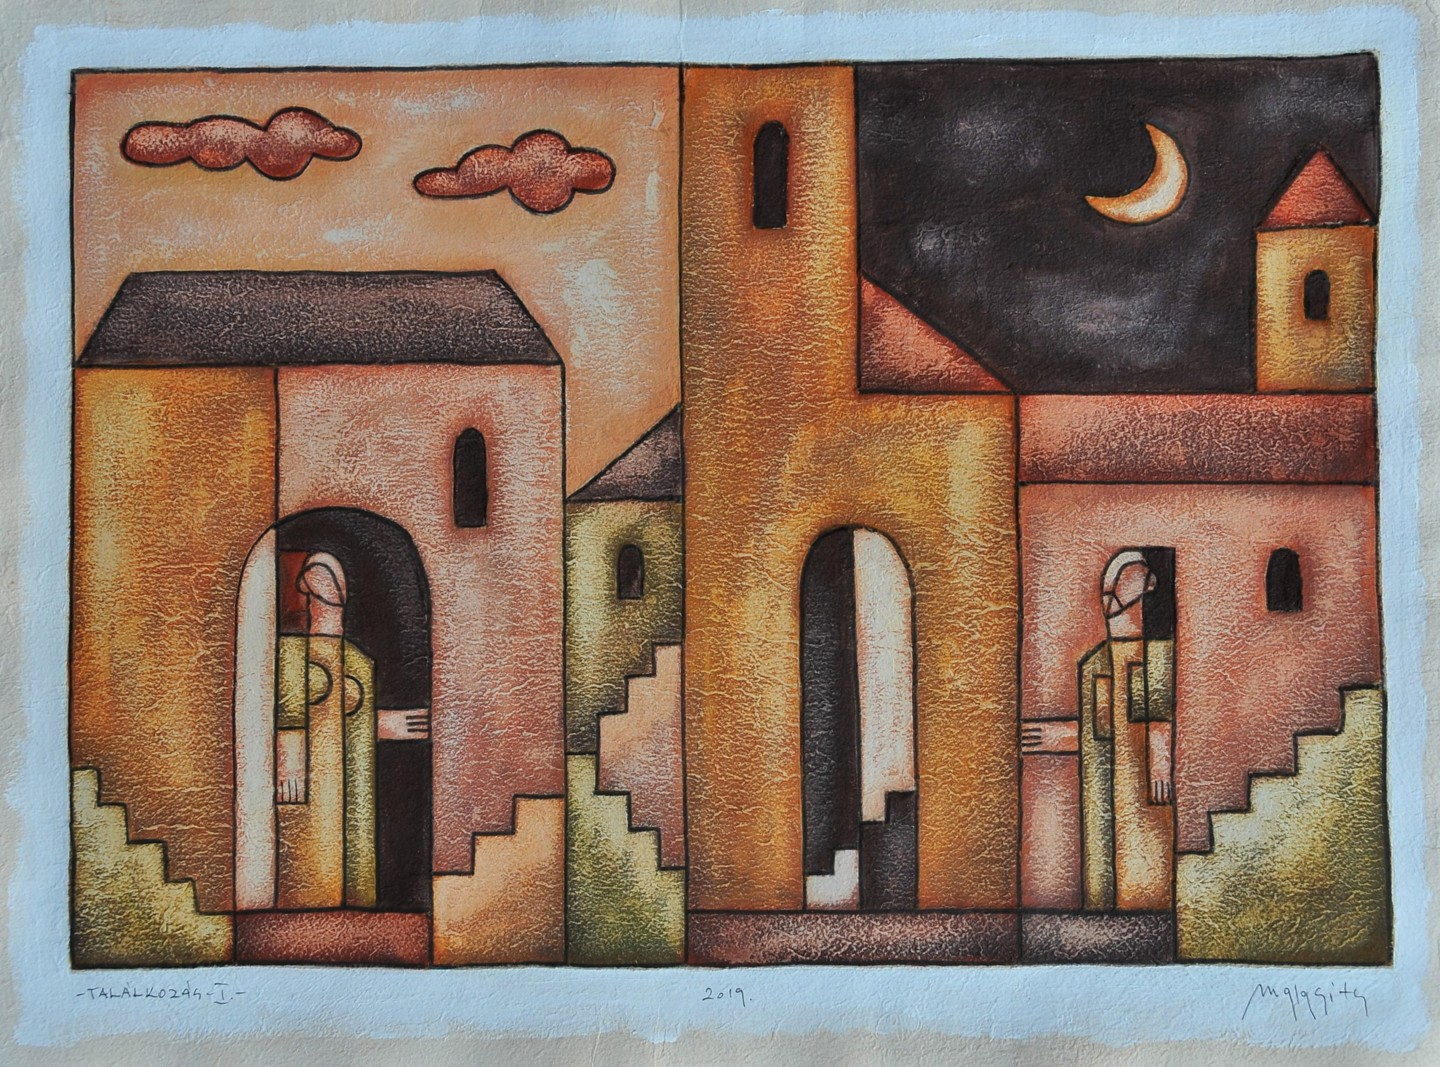 Zsolt Malasits - Meet in the old town 1